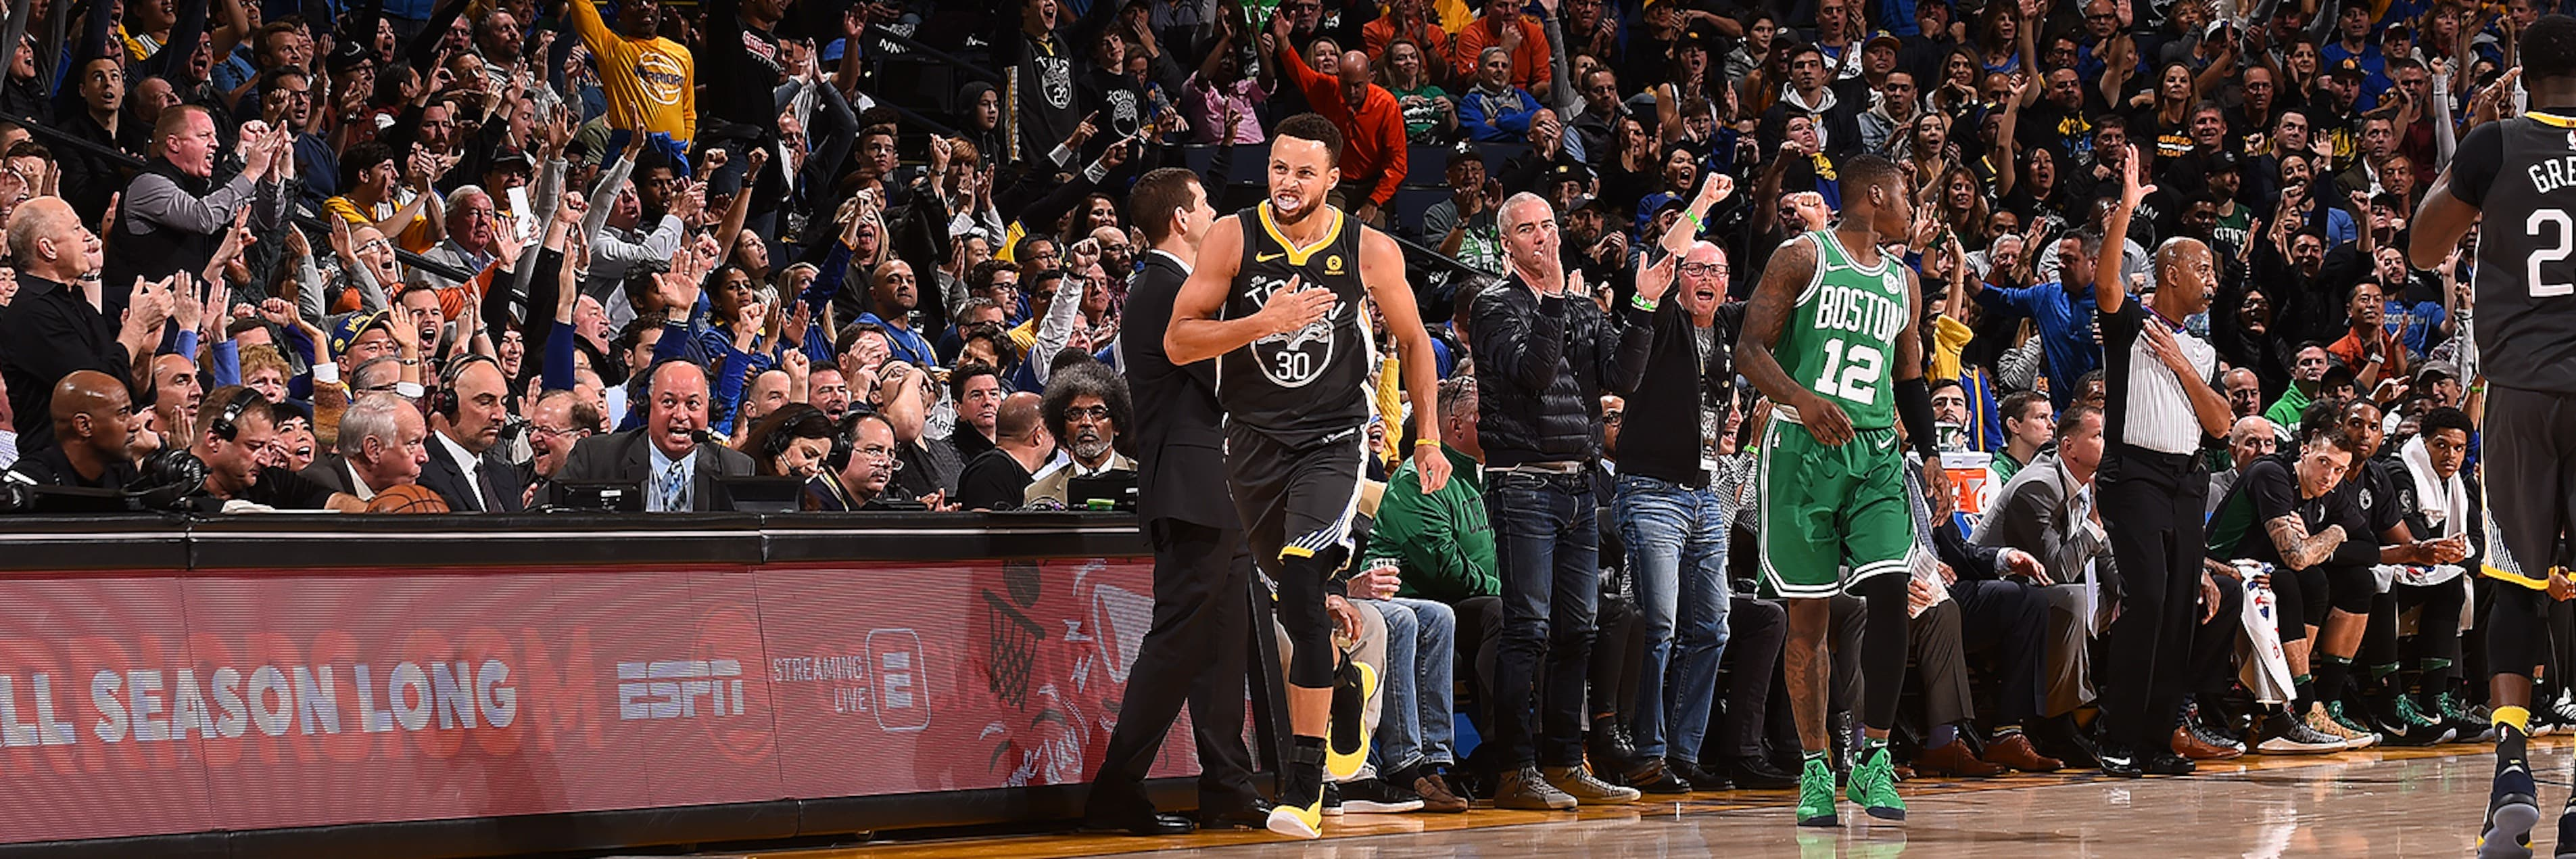 Clutch Curry Delivers as Dubs Beat Celtics